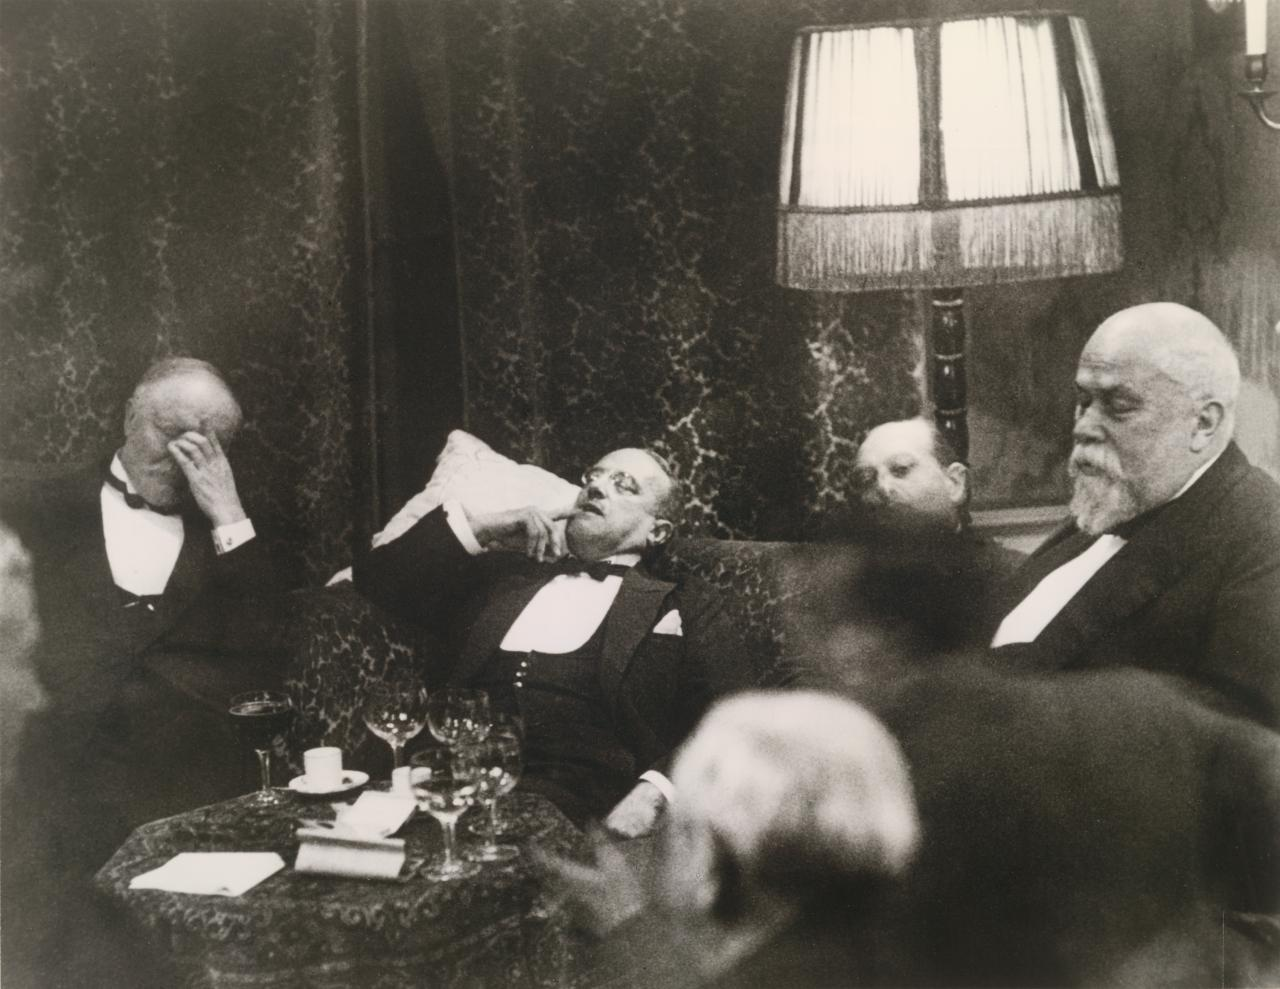 Second Hague Conference on Reparations, January 1930, in the early morning hours